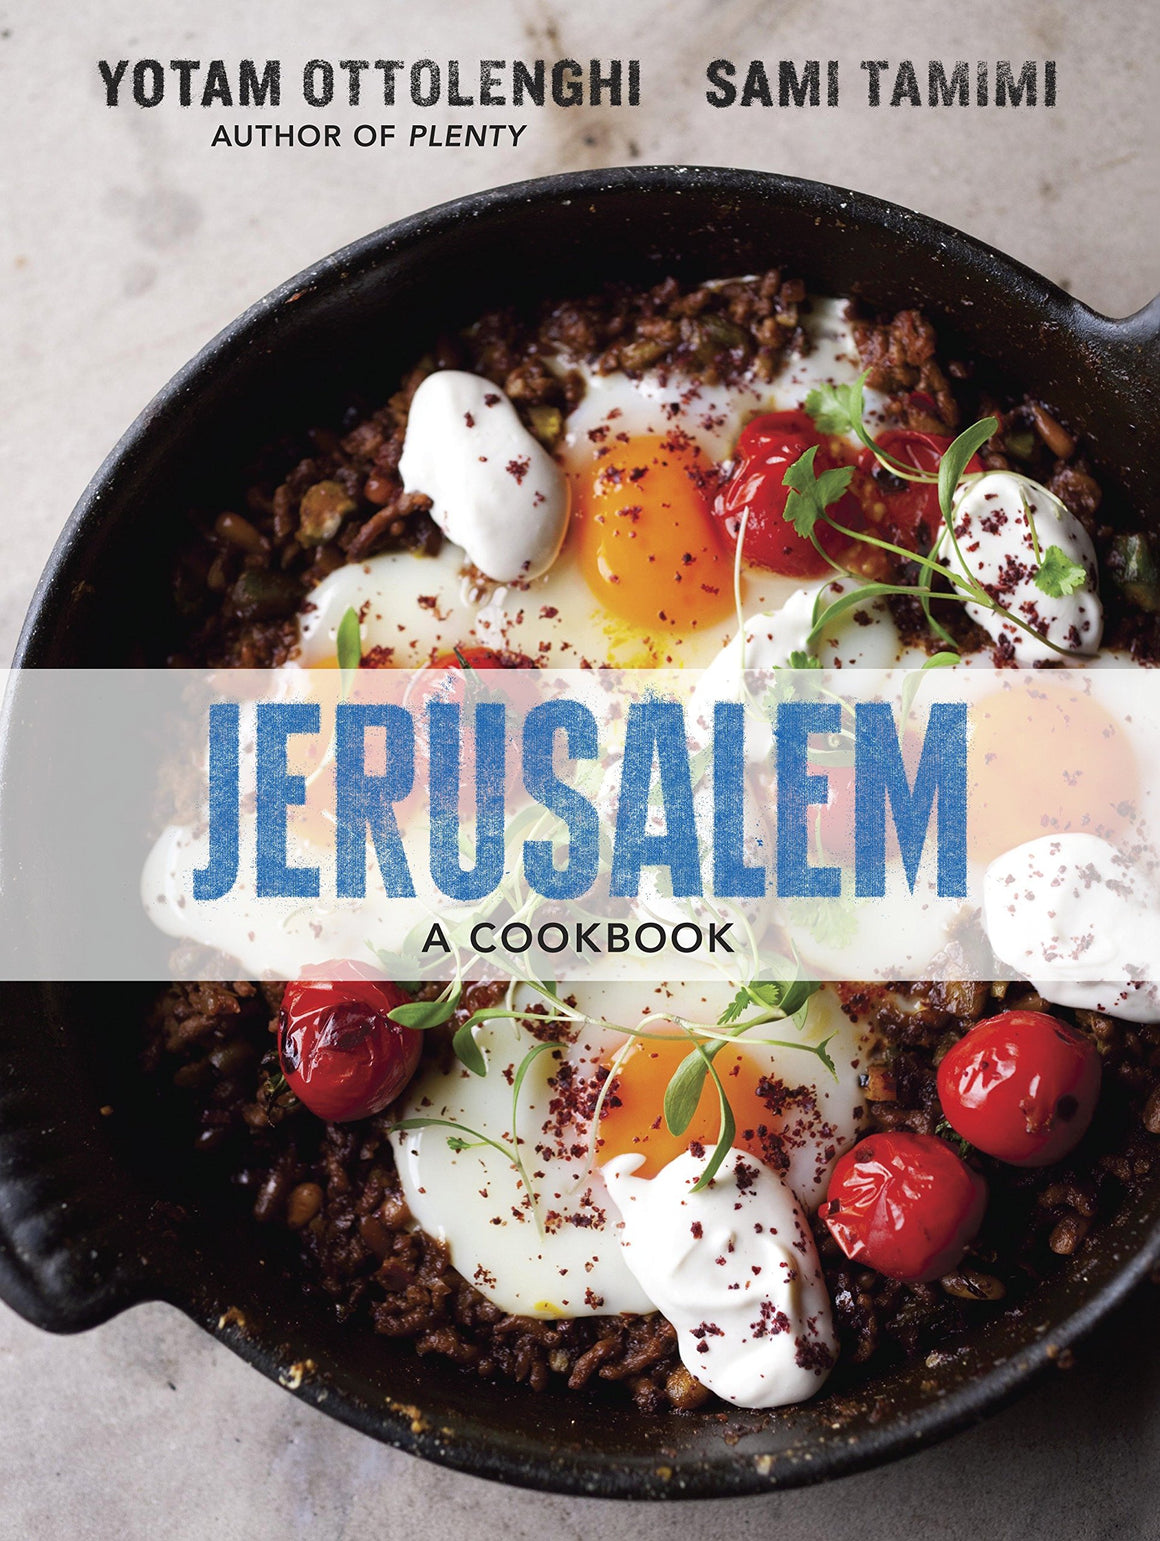 Yotam Ottolenghi and Sami Tamimi. Jerusalem: A Cookbook